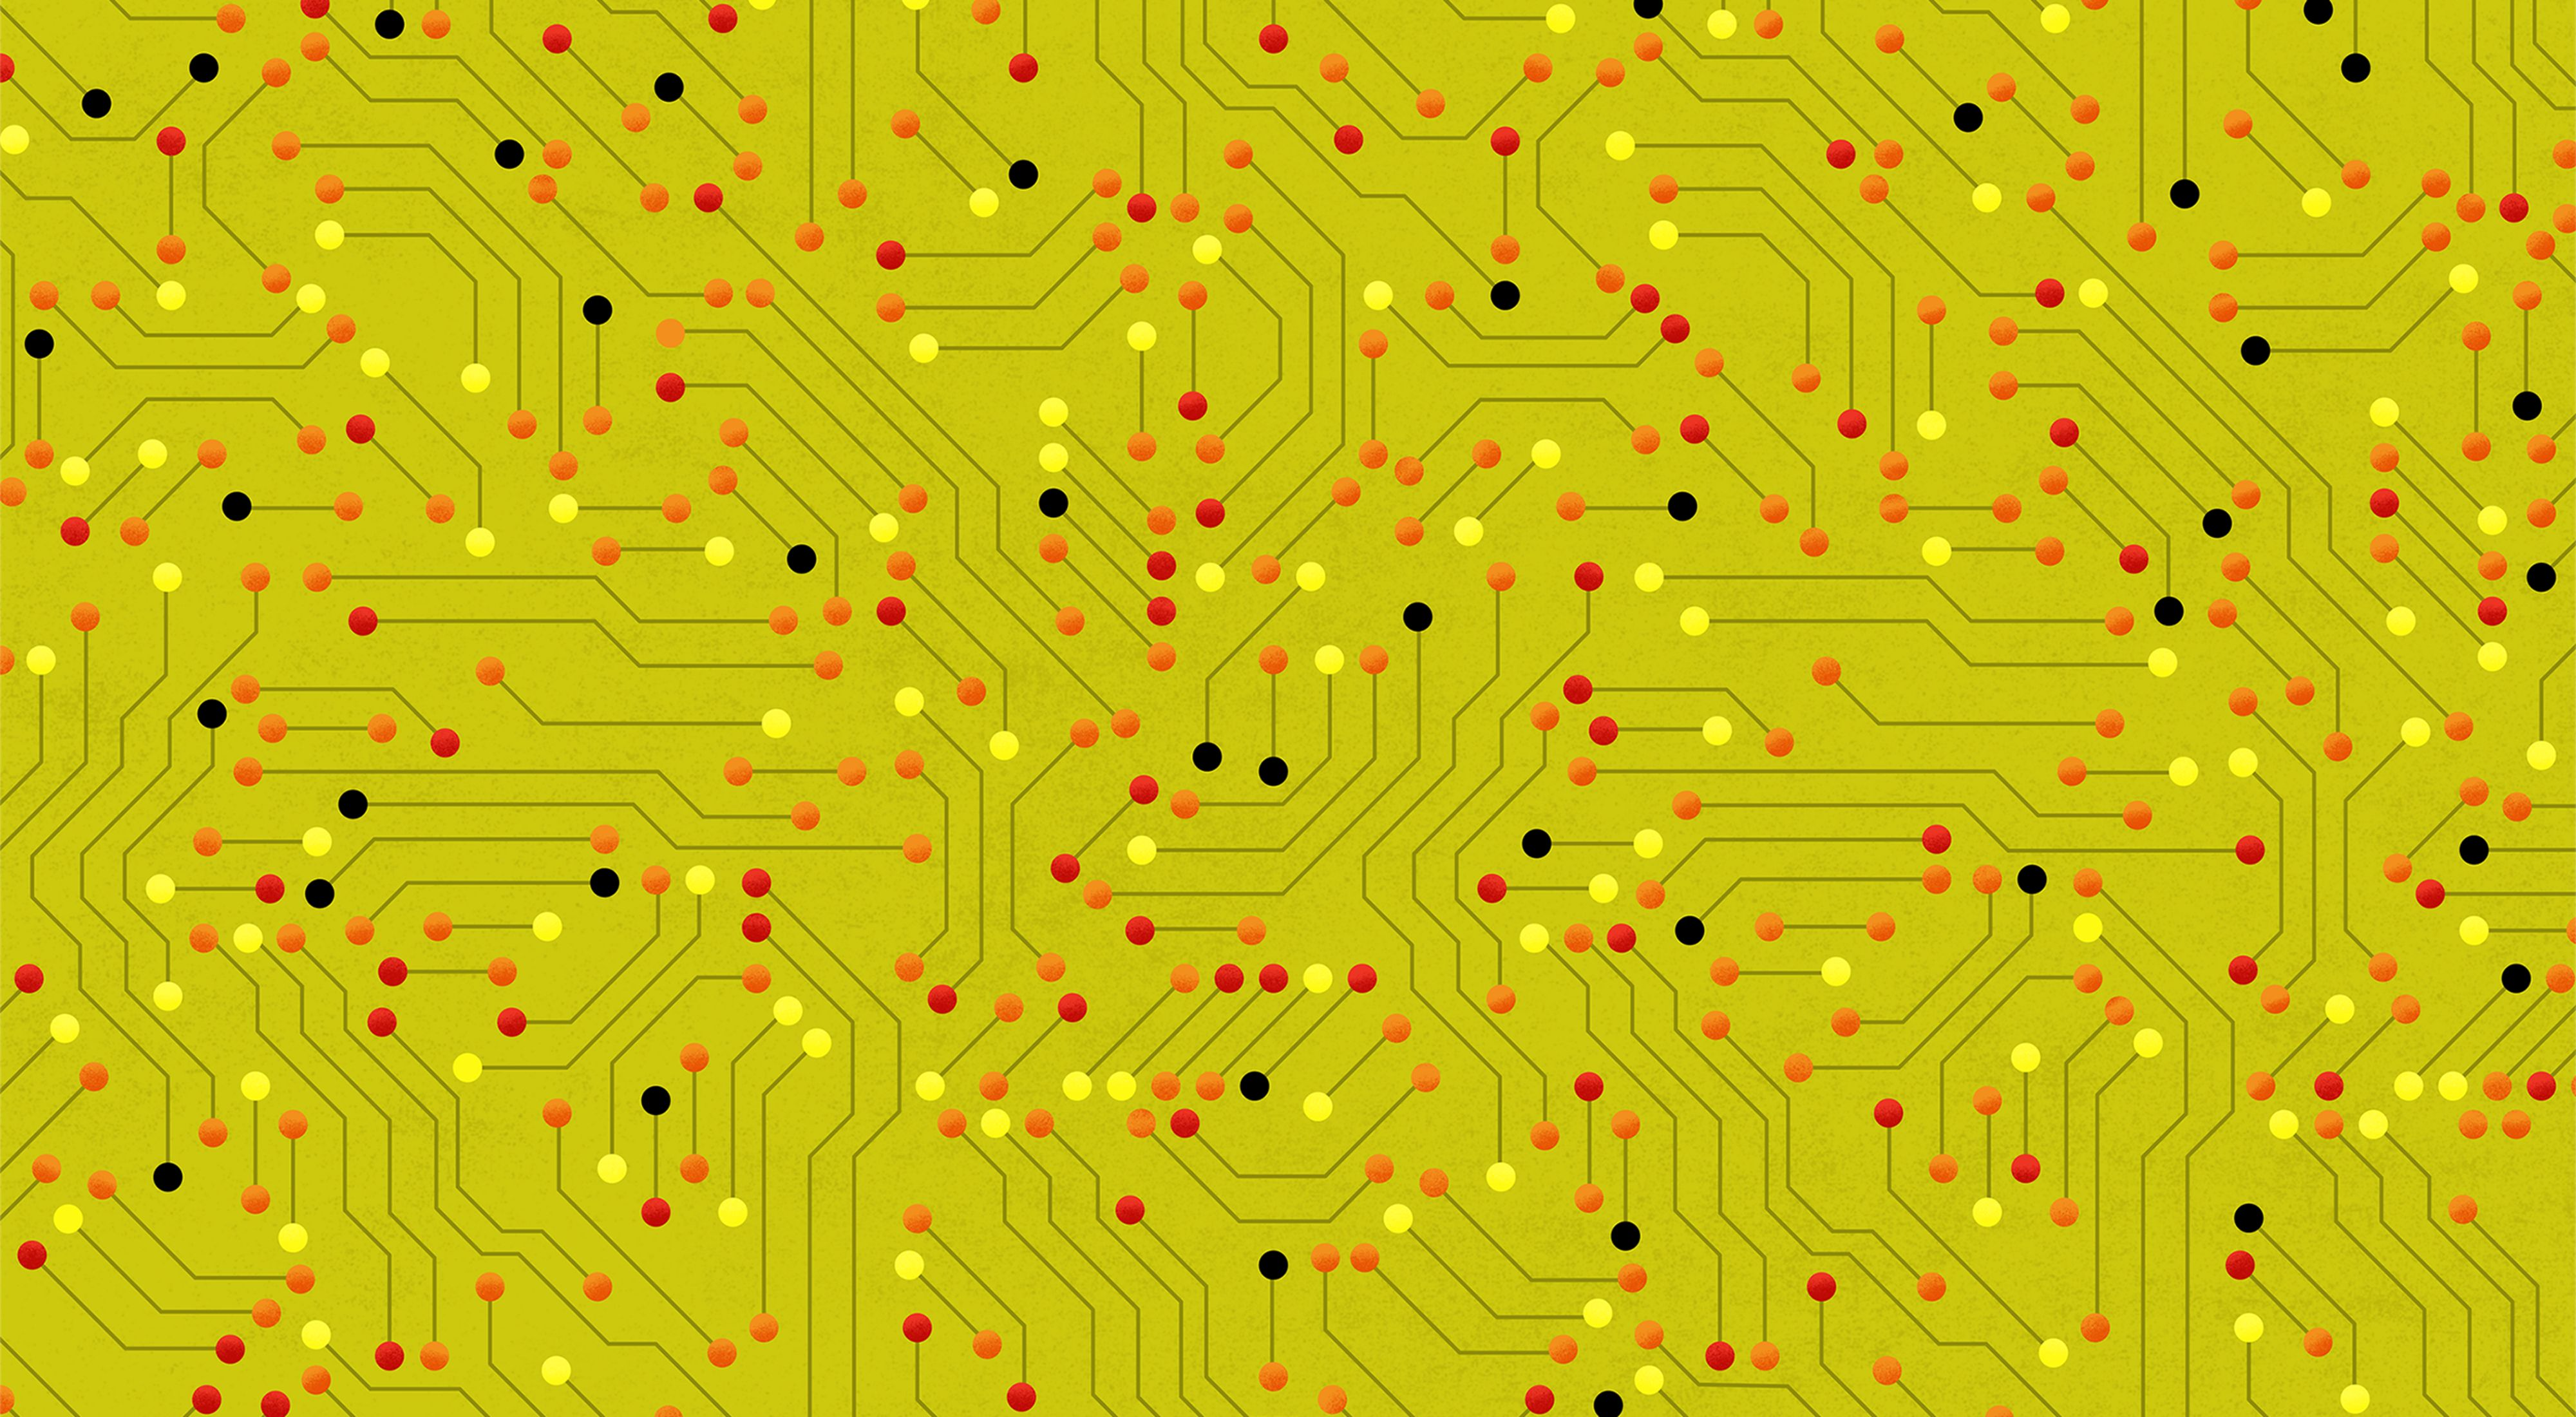 An abstract pattern based on a circuit board, with red, orange, and yellow nodes and a lime green background